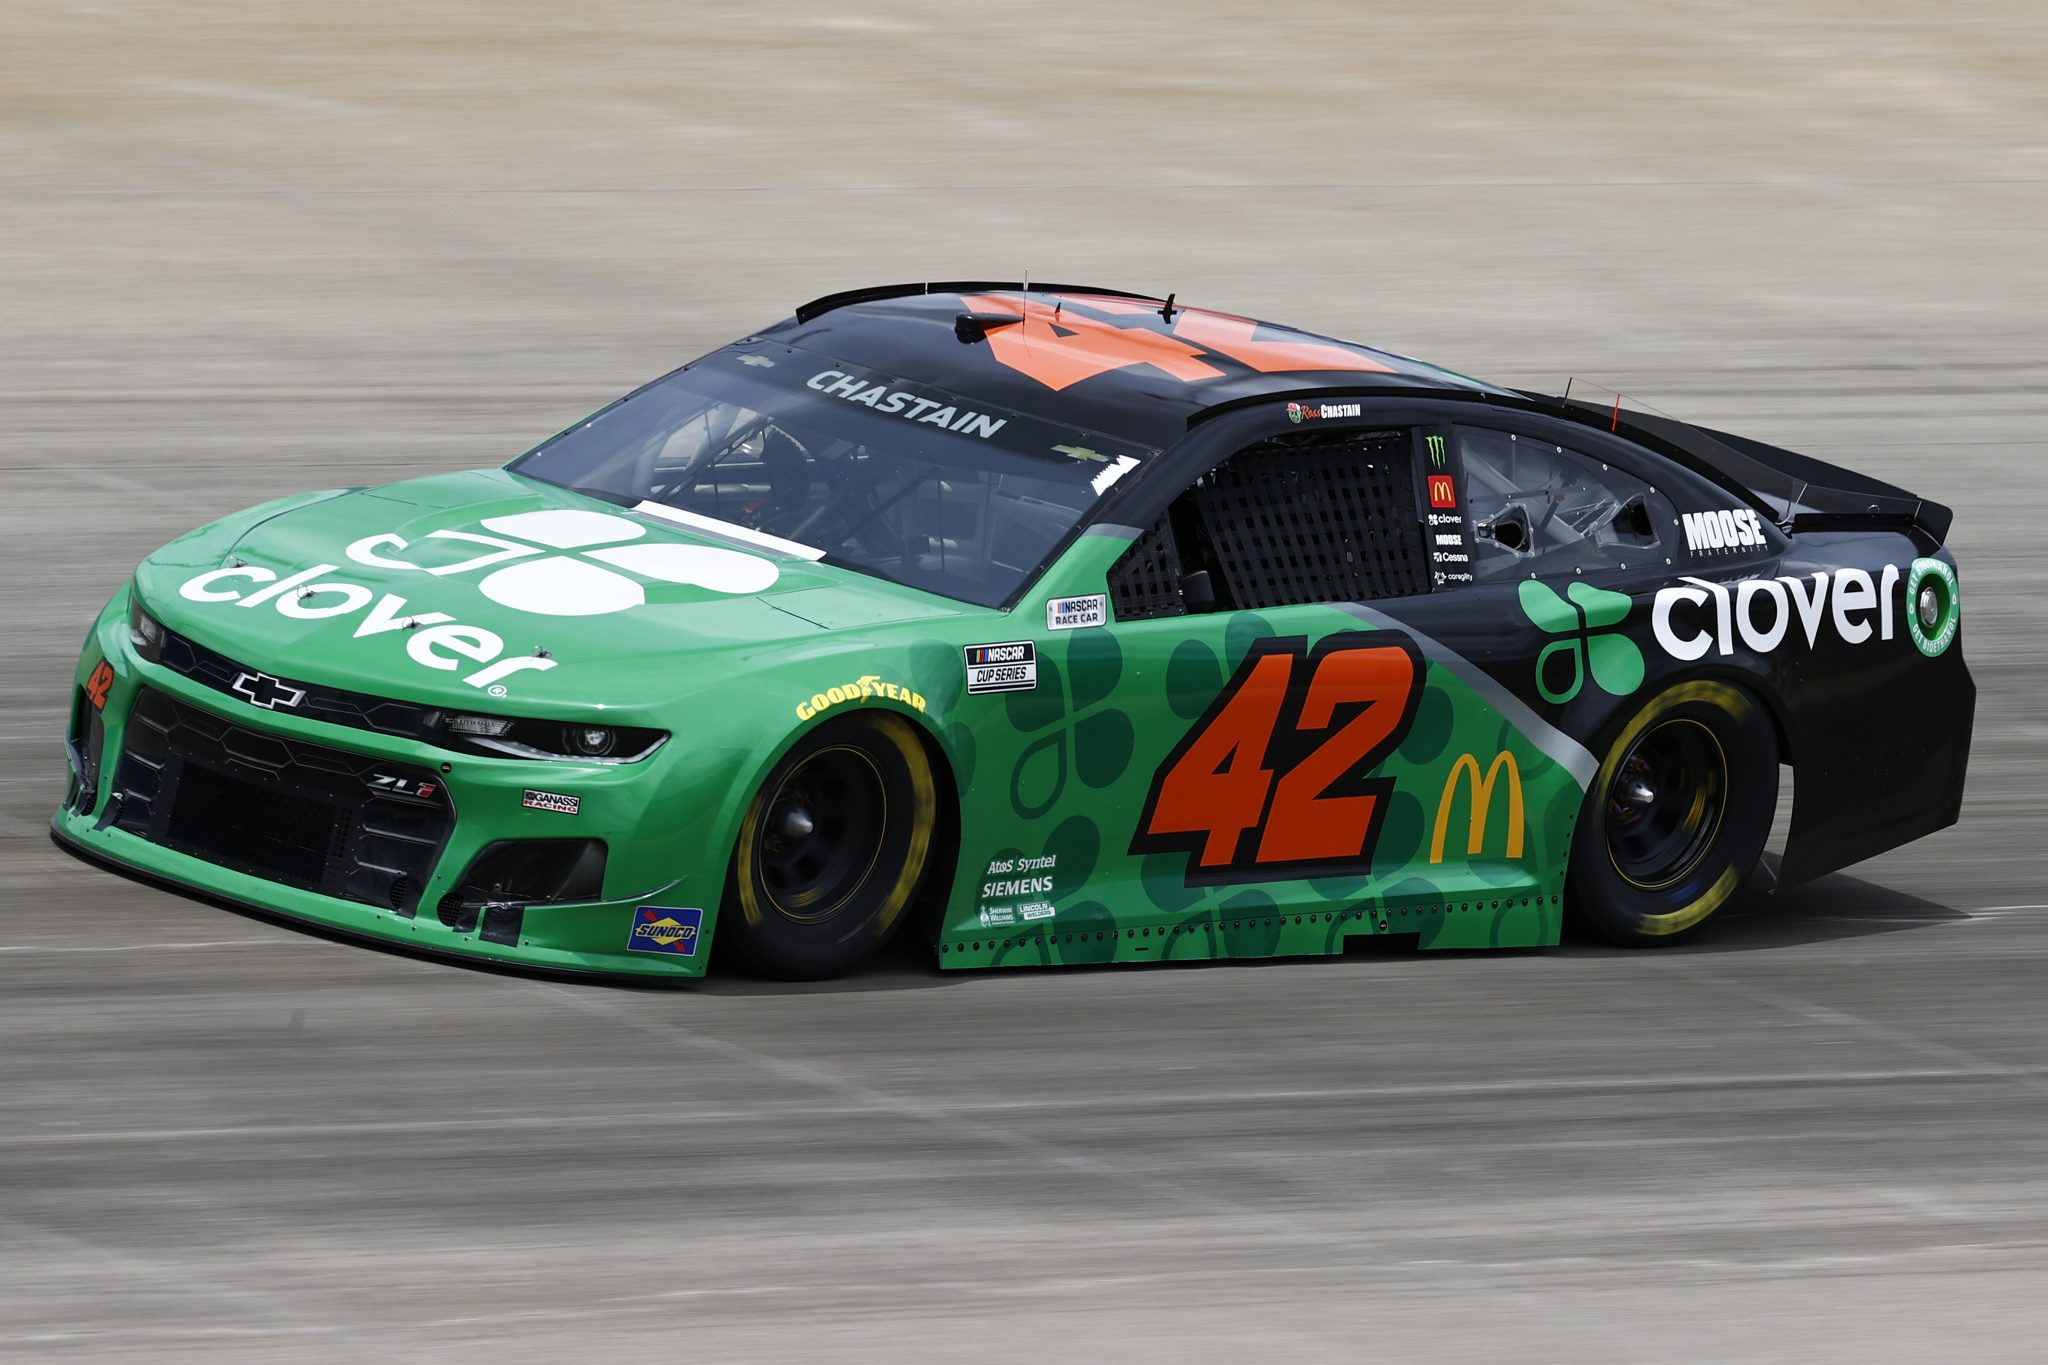 LEBANON, TENNESSEE - JUNE 19: Ross Chastain, driver of the #42 Clover Chevrolet, drives during practice for the NASCAR Cup Series Ally 400 at Nashville Superspeedway on June 19, 2021 in Lebanon, Tennessee. (Photo by Jared C. Tilton/Getty Images) | Getty Images